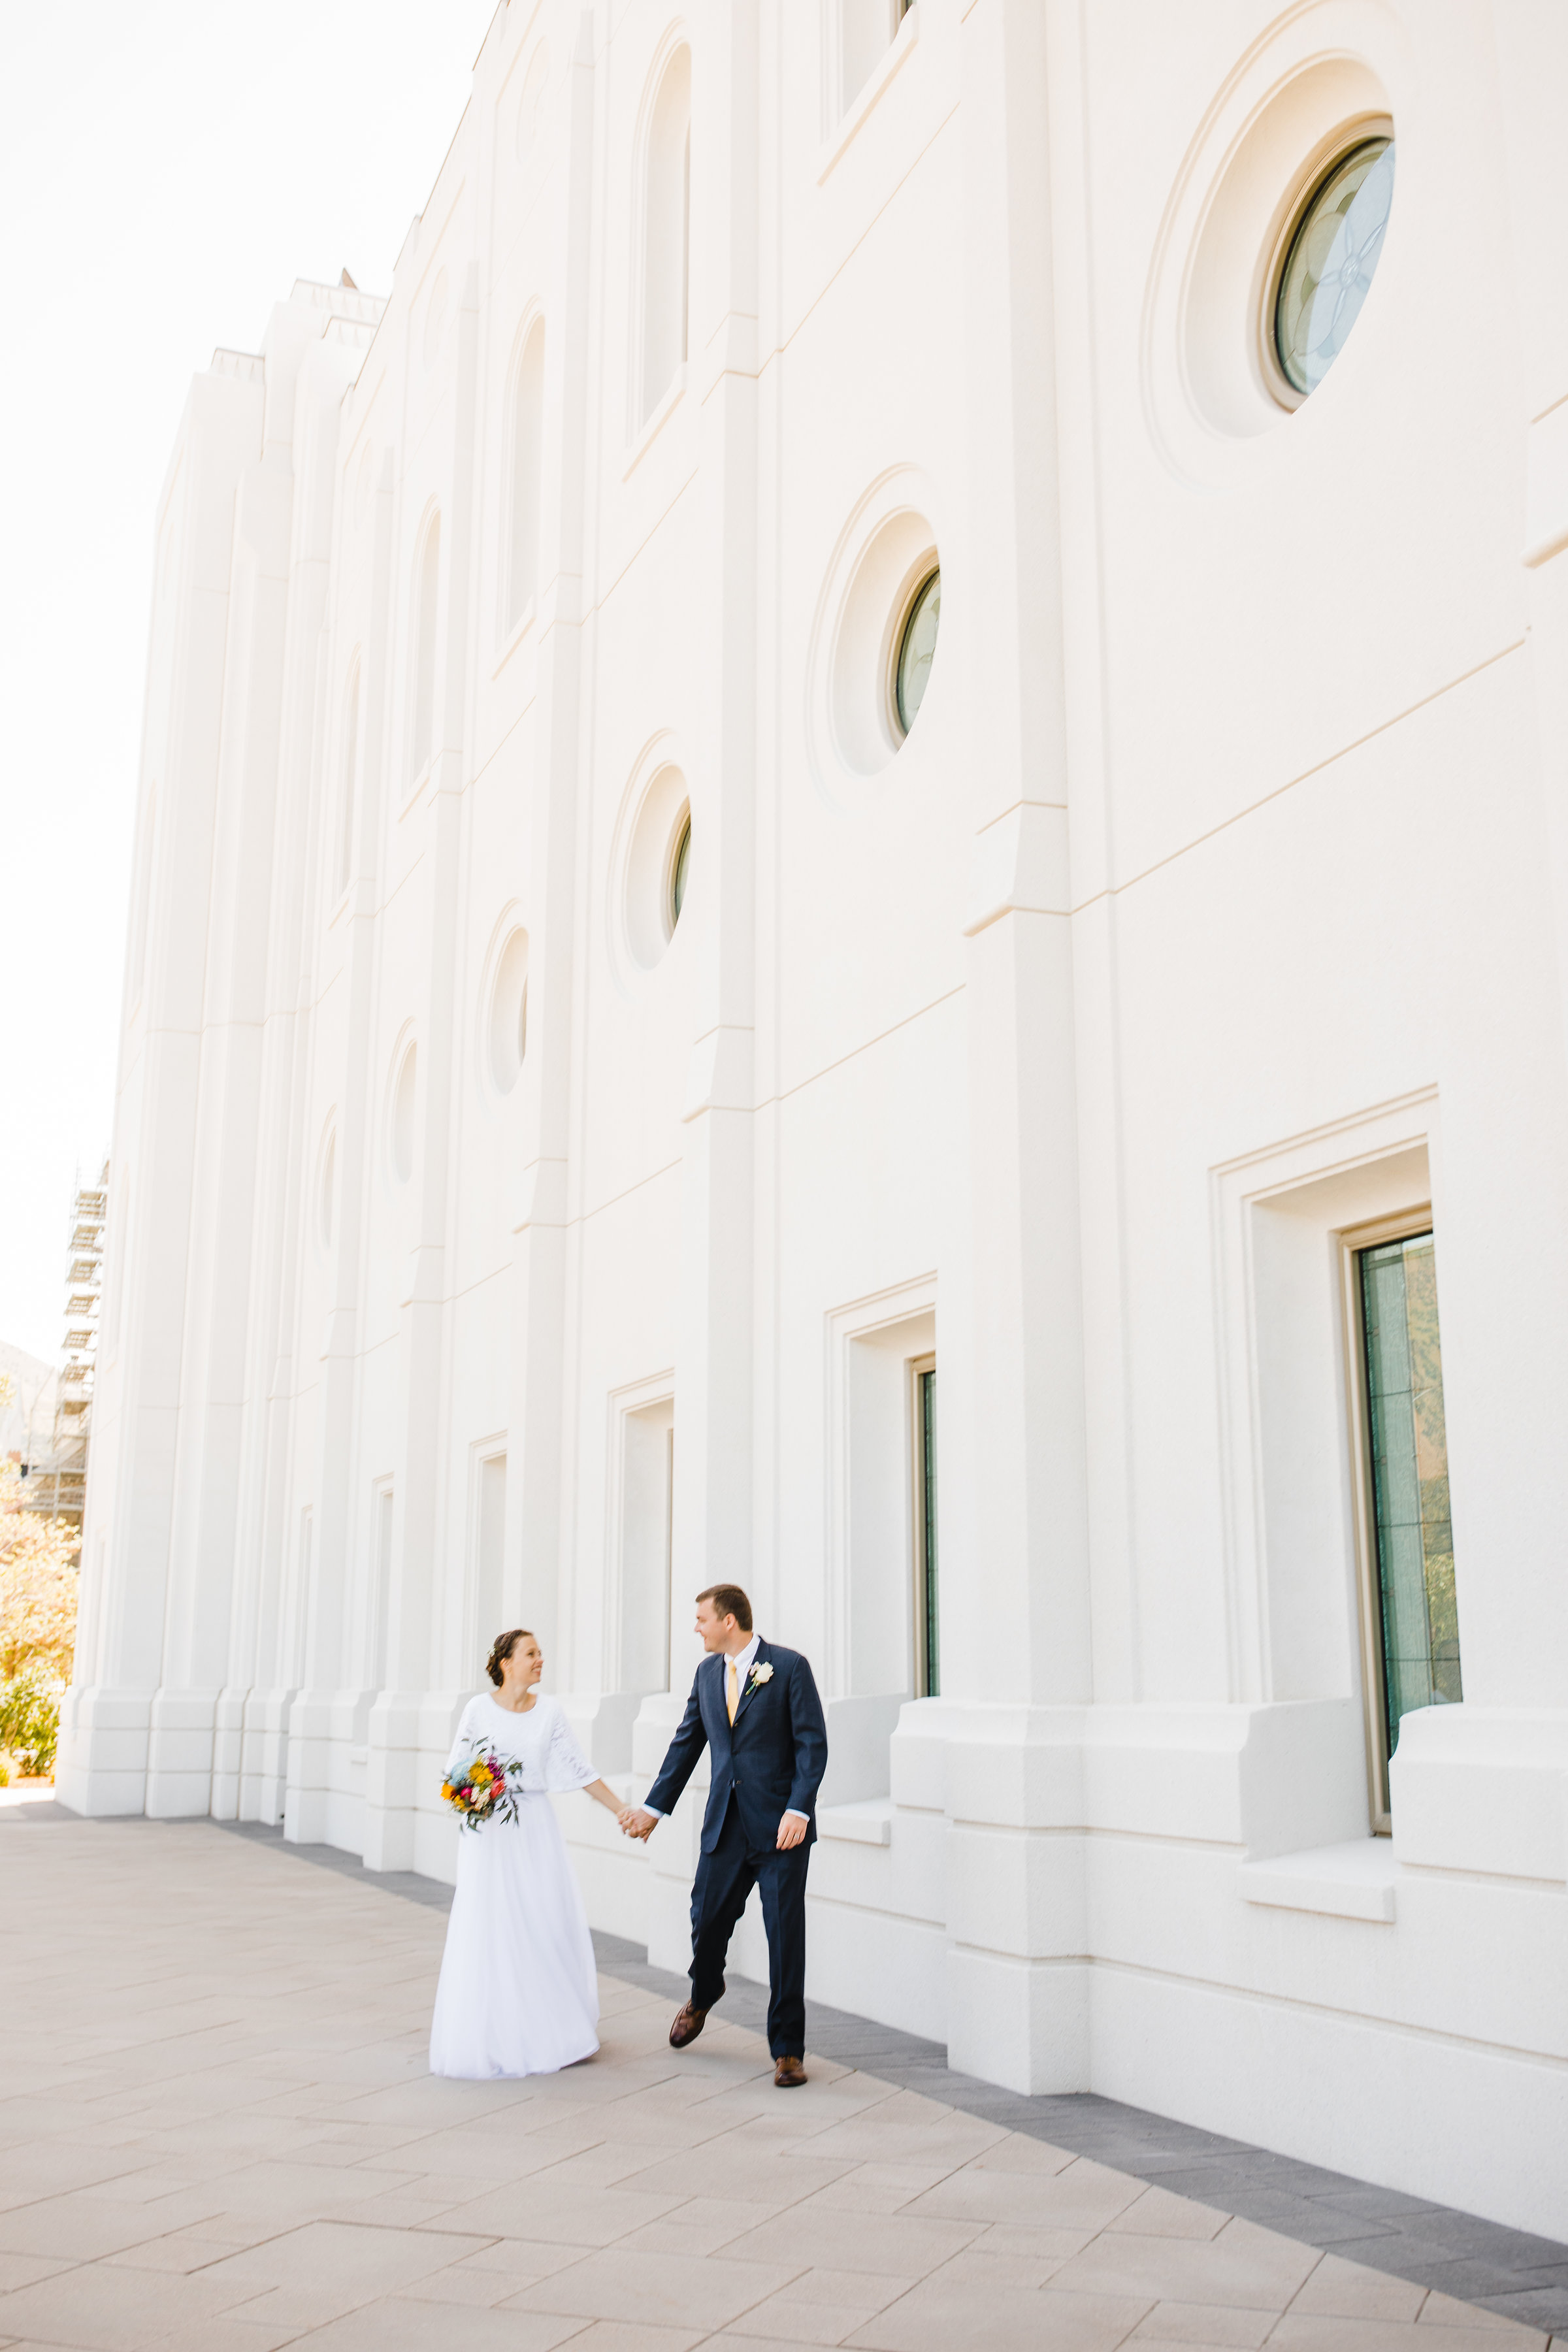 professional wedding photographer in utah valley lds temple wedding holding hands